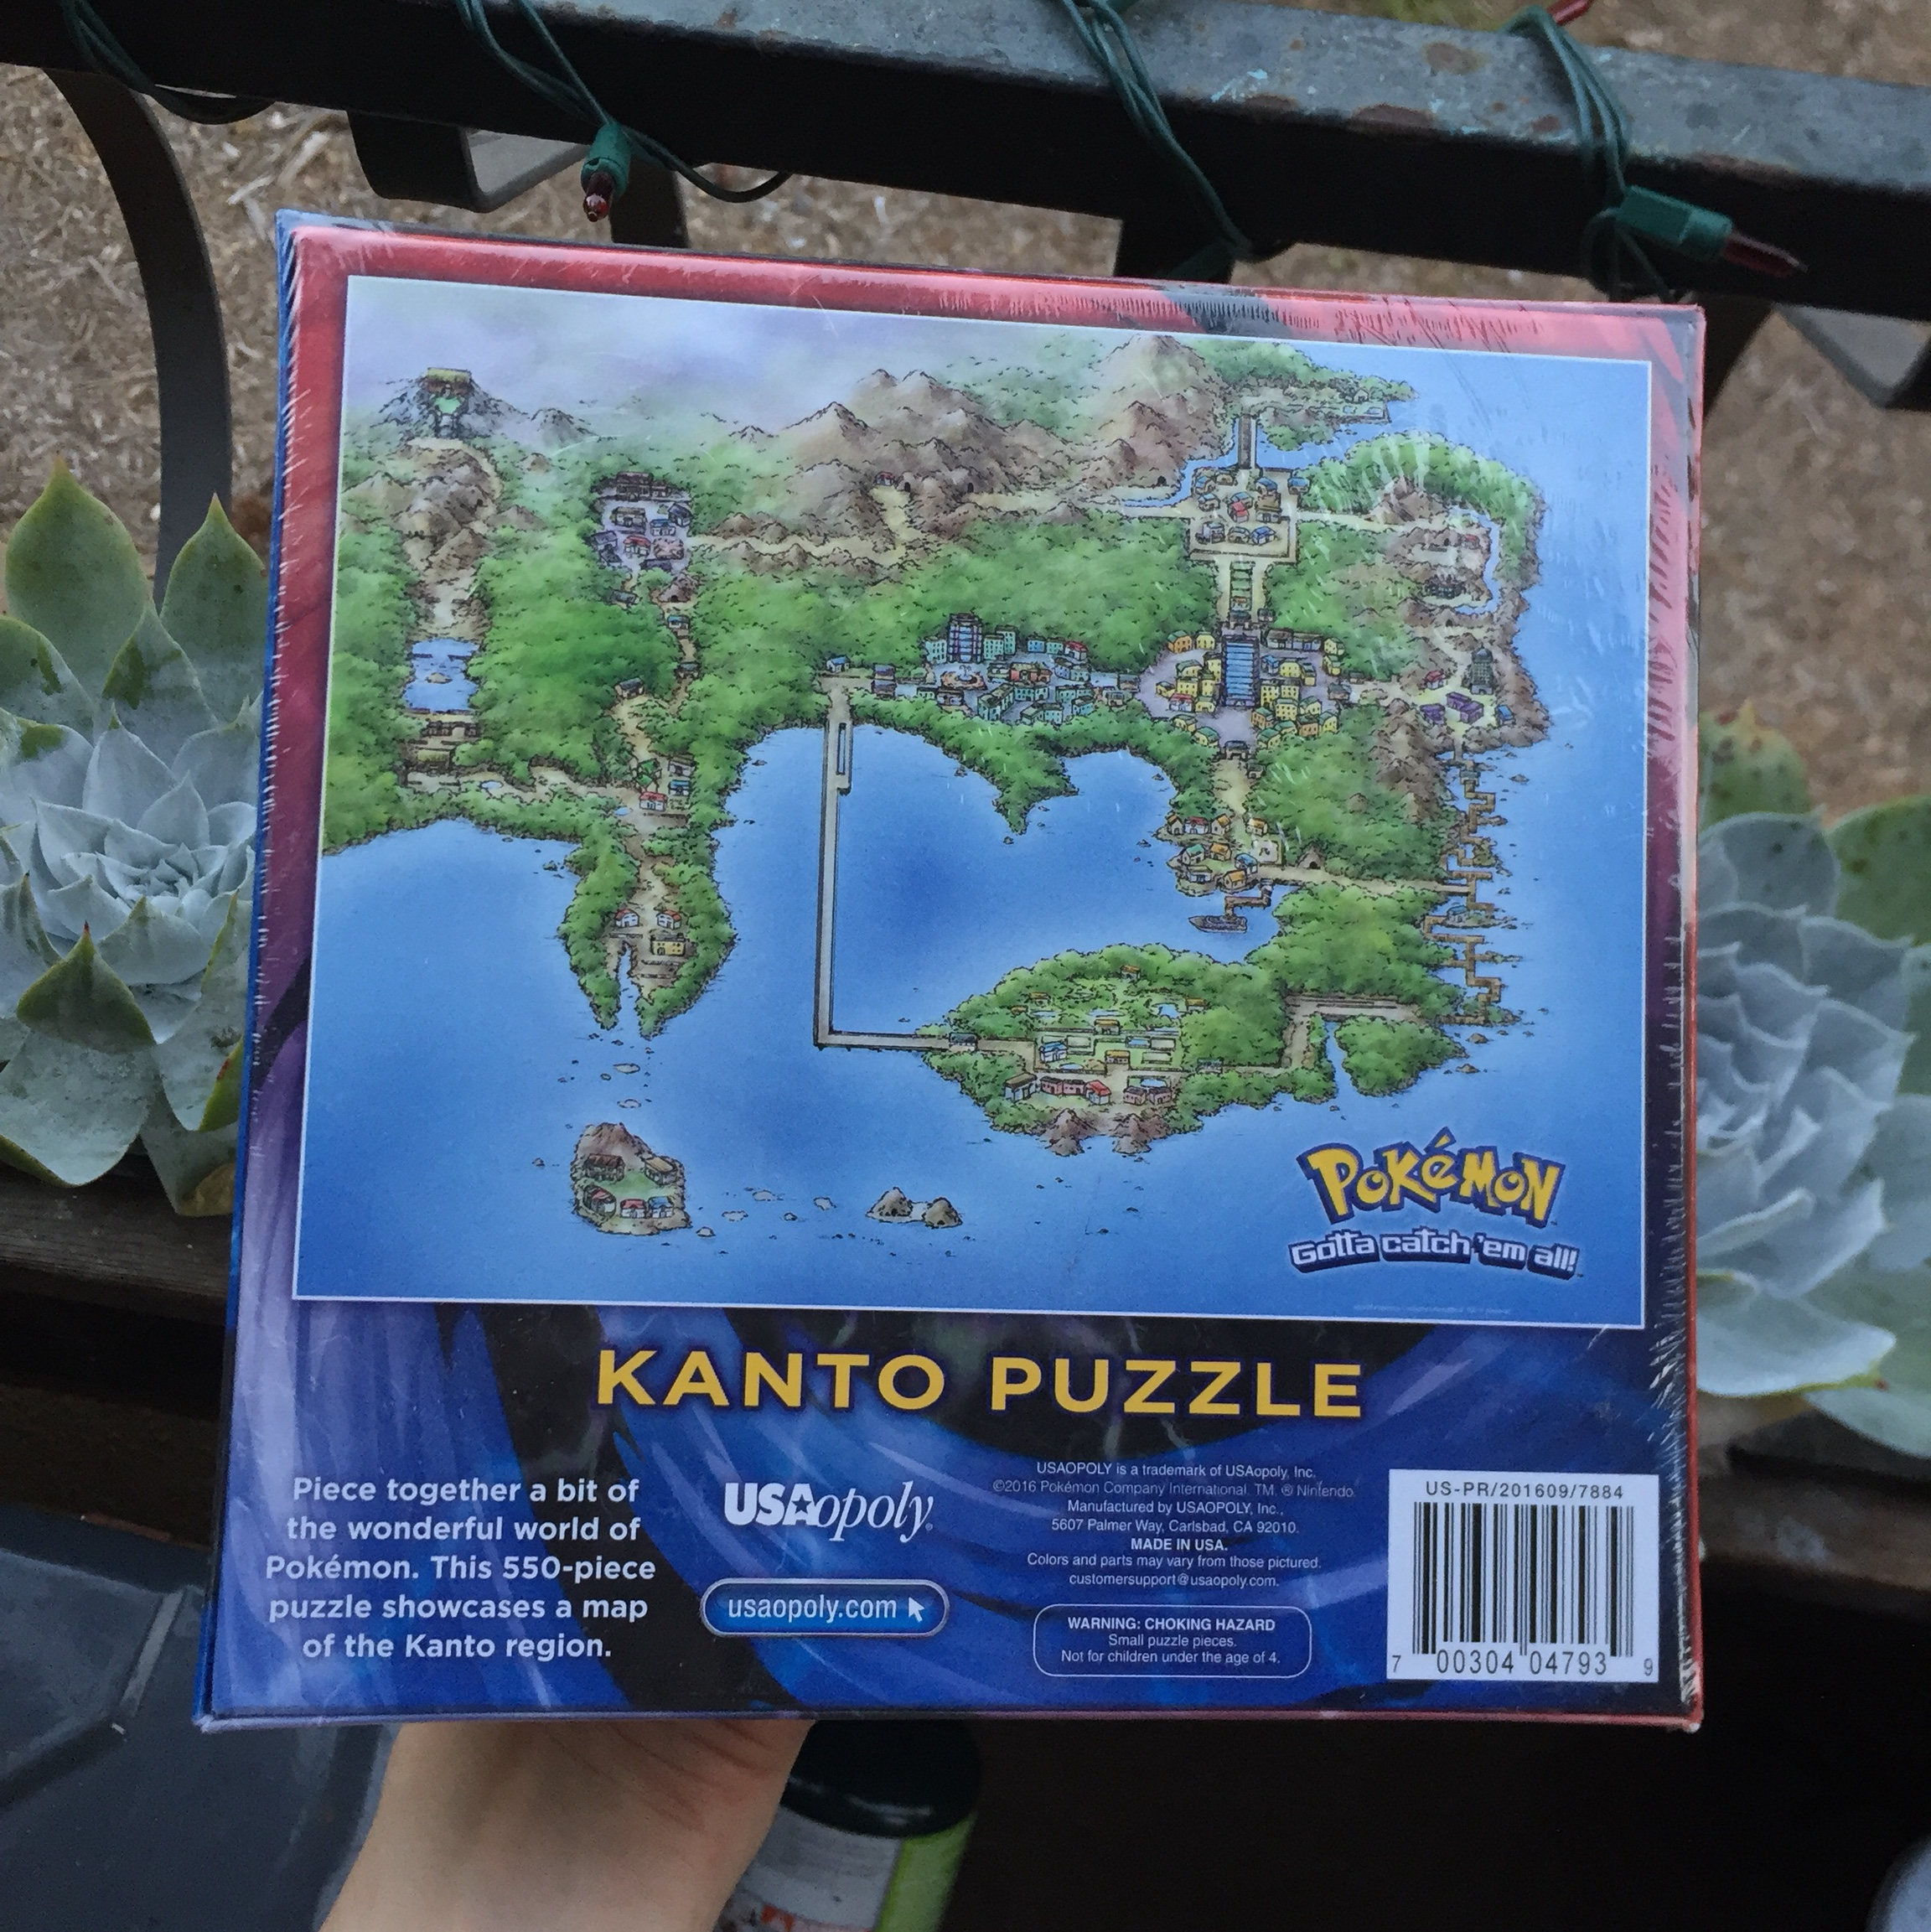 POKEMON KANTO REGION MAP 550 puzzle pieces - Depop on 1880 united states map, puget sound region map, japan map, nysdec region map, wakayama map, johto region map, driftless region map, upper peninsula of michigan map, national capital region map, greater los angeles area map, oklahoma panhandle map, honshu map, southeastern us map, southern sea map, ozark region map, quad city region map, kansai region map, crimea region map, andean region map, midwestern united states map,